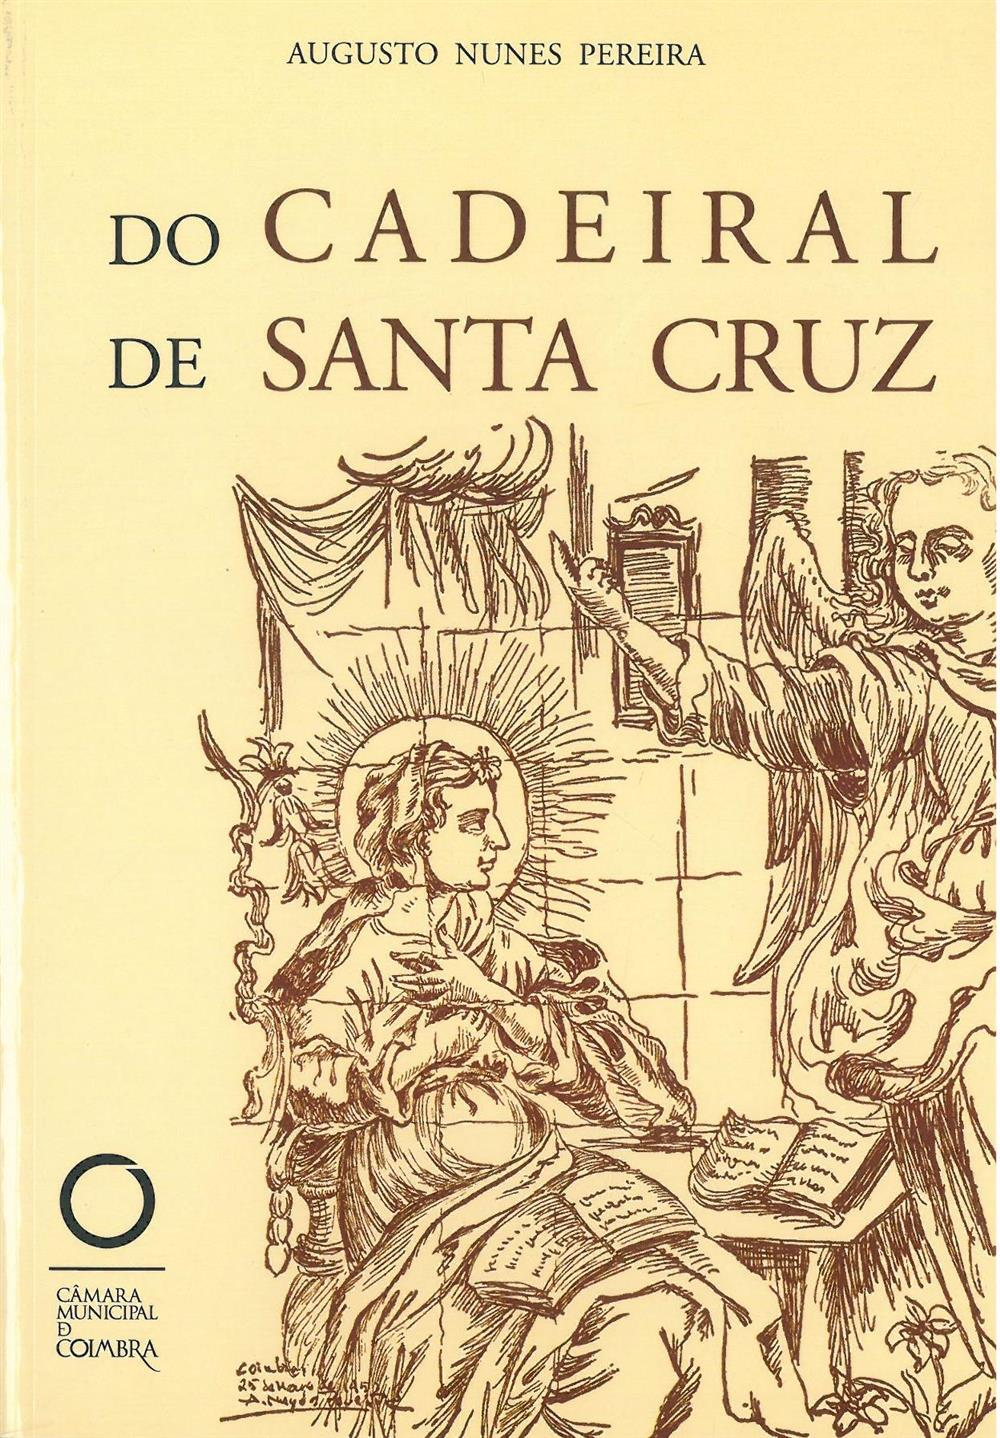 Do cadeiral de Santa Cruz_.jpg